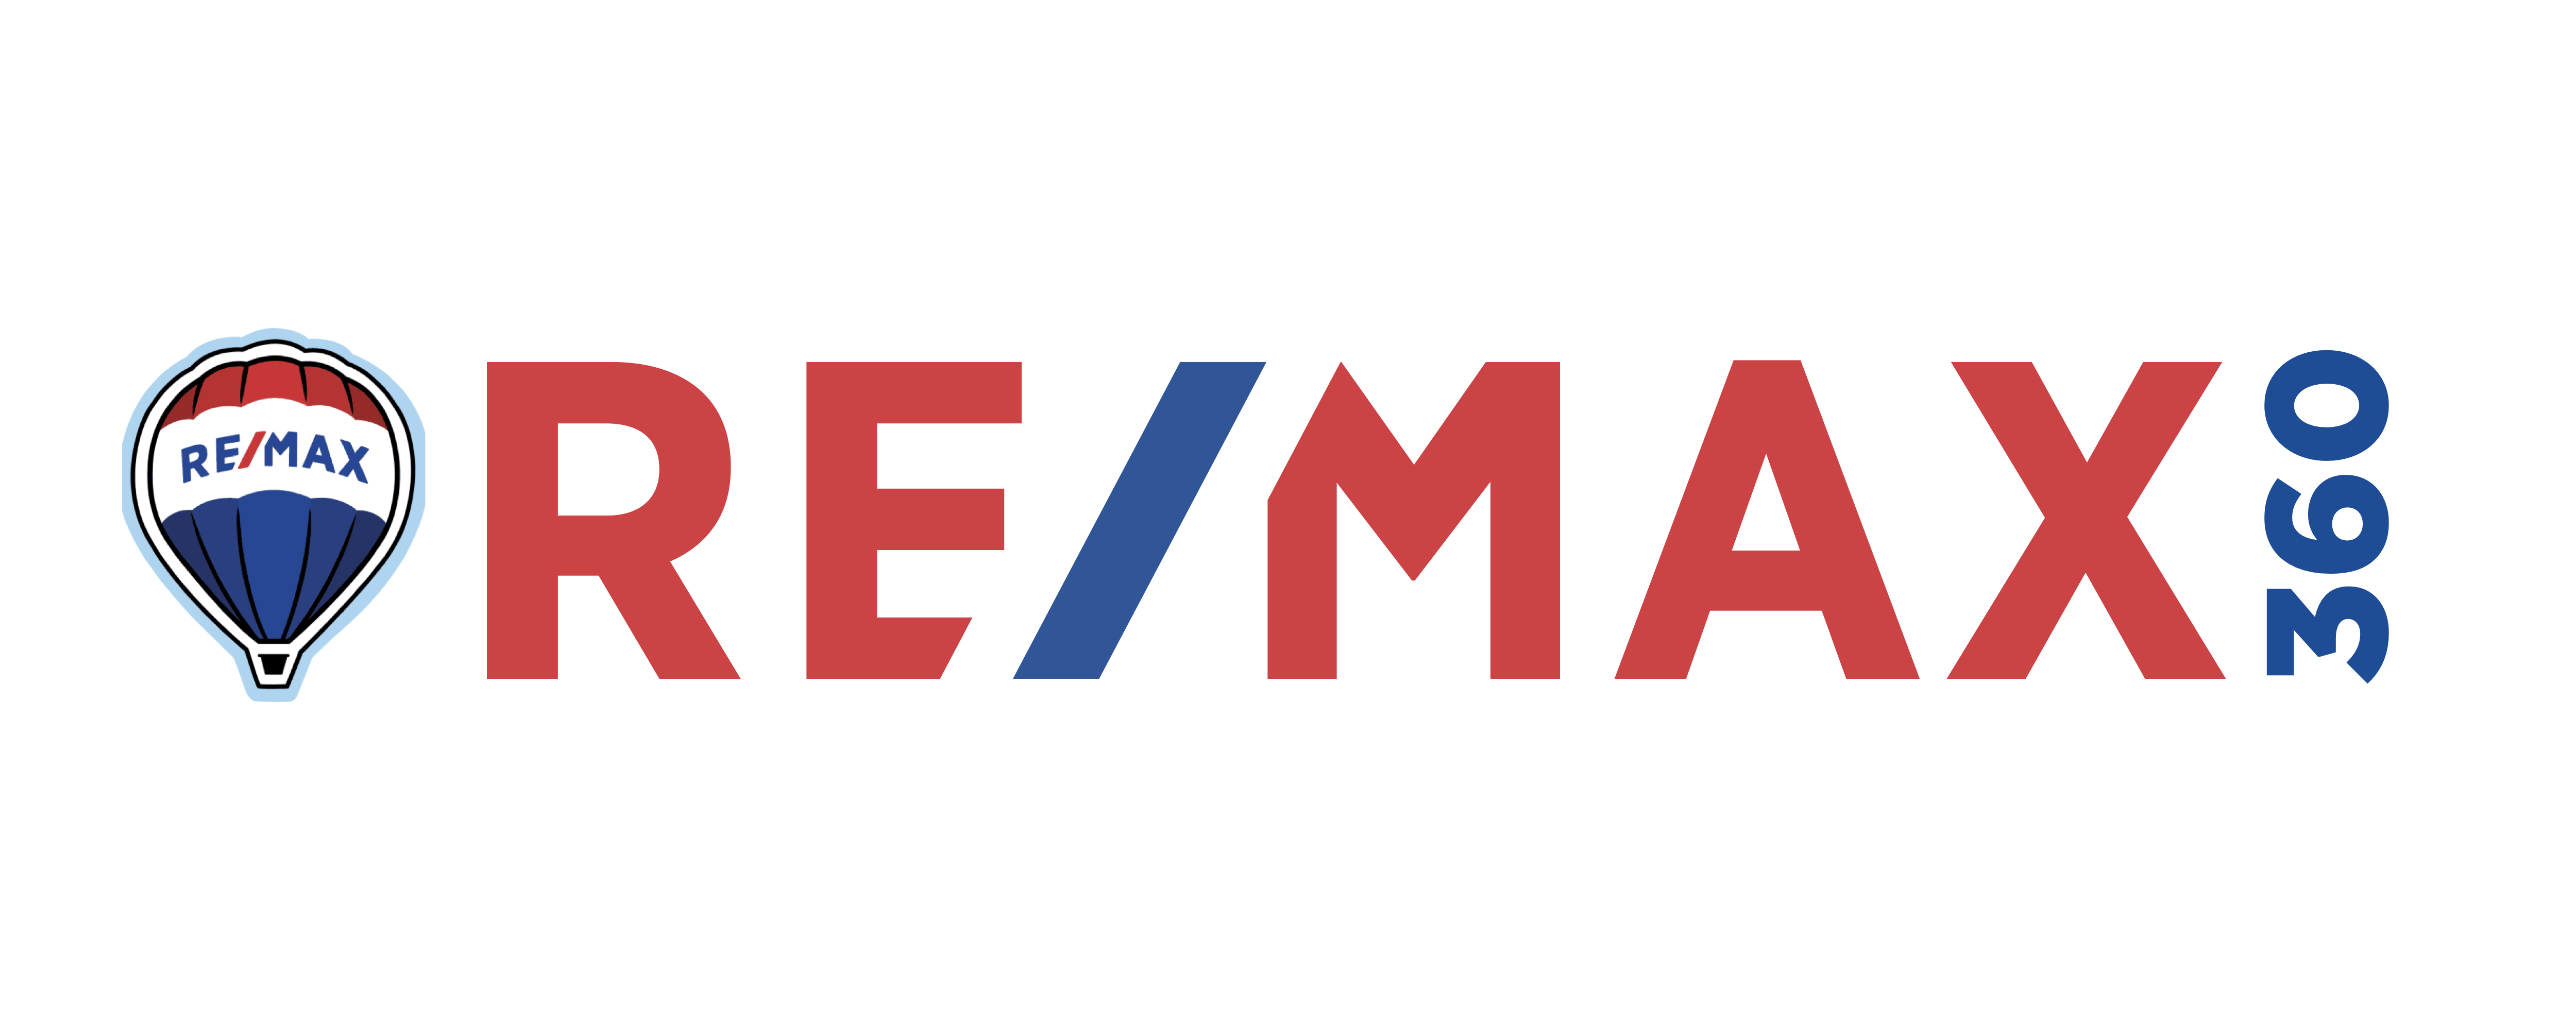 RE/MAX 360 balloon and word logo